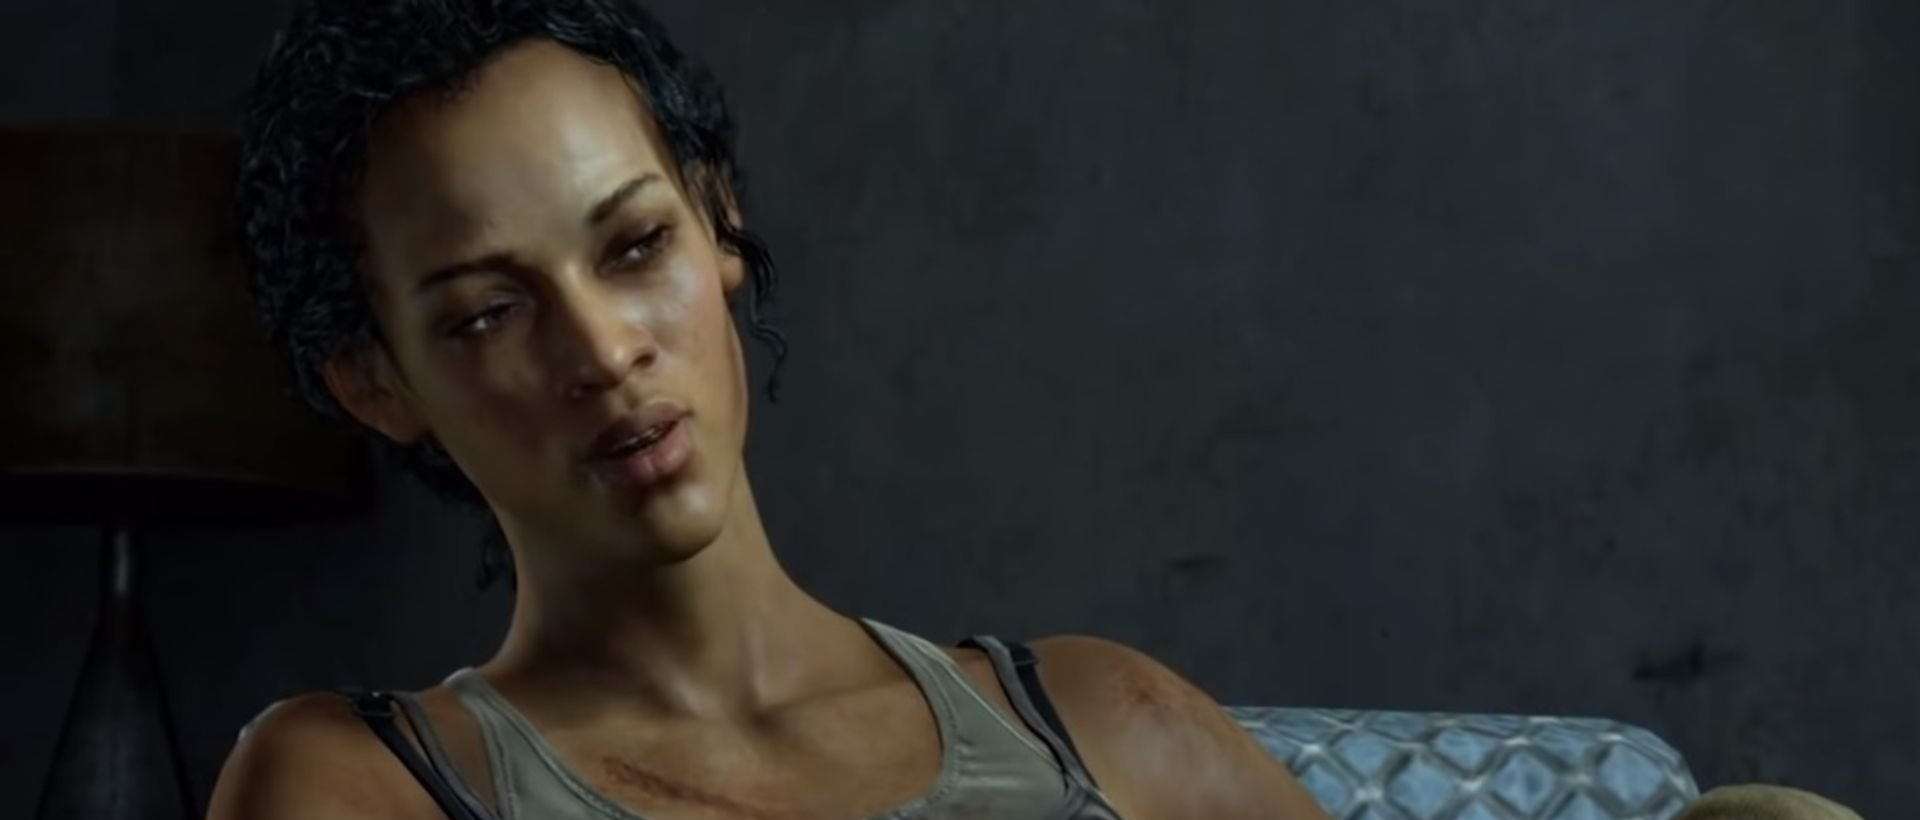 HBO's The Last of Us Series Taps Merle Dandridge to Reprise Role as Marlene From Original Game